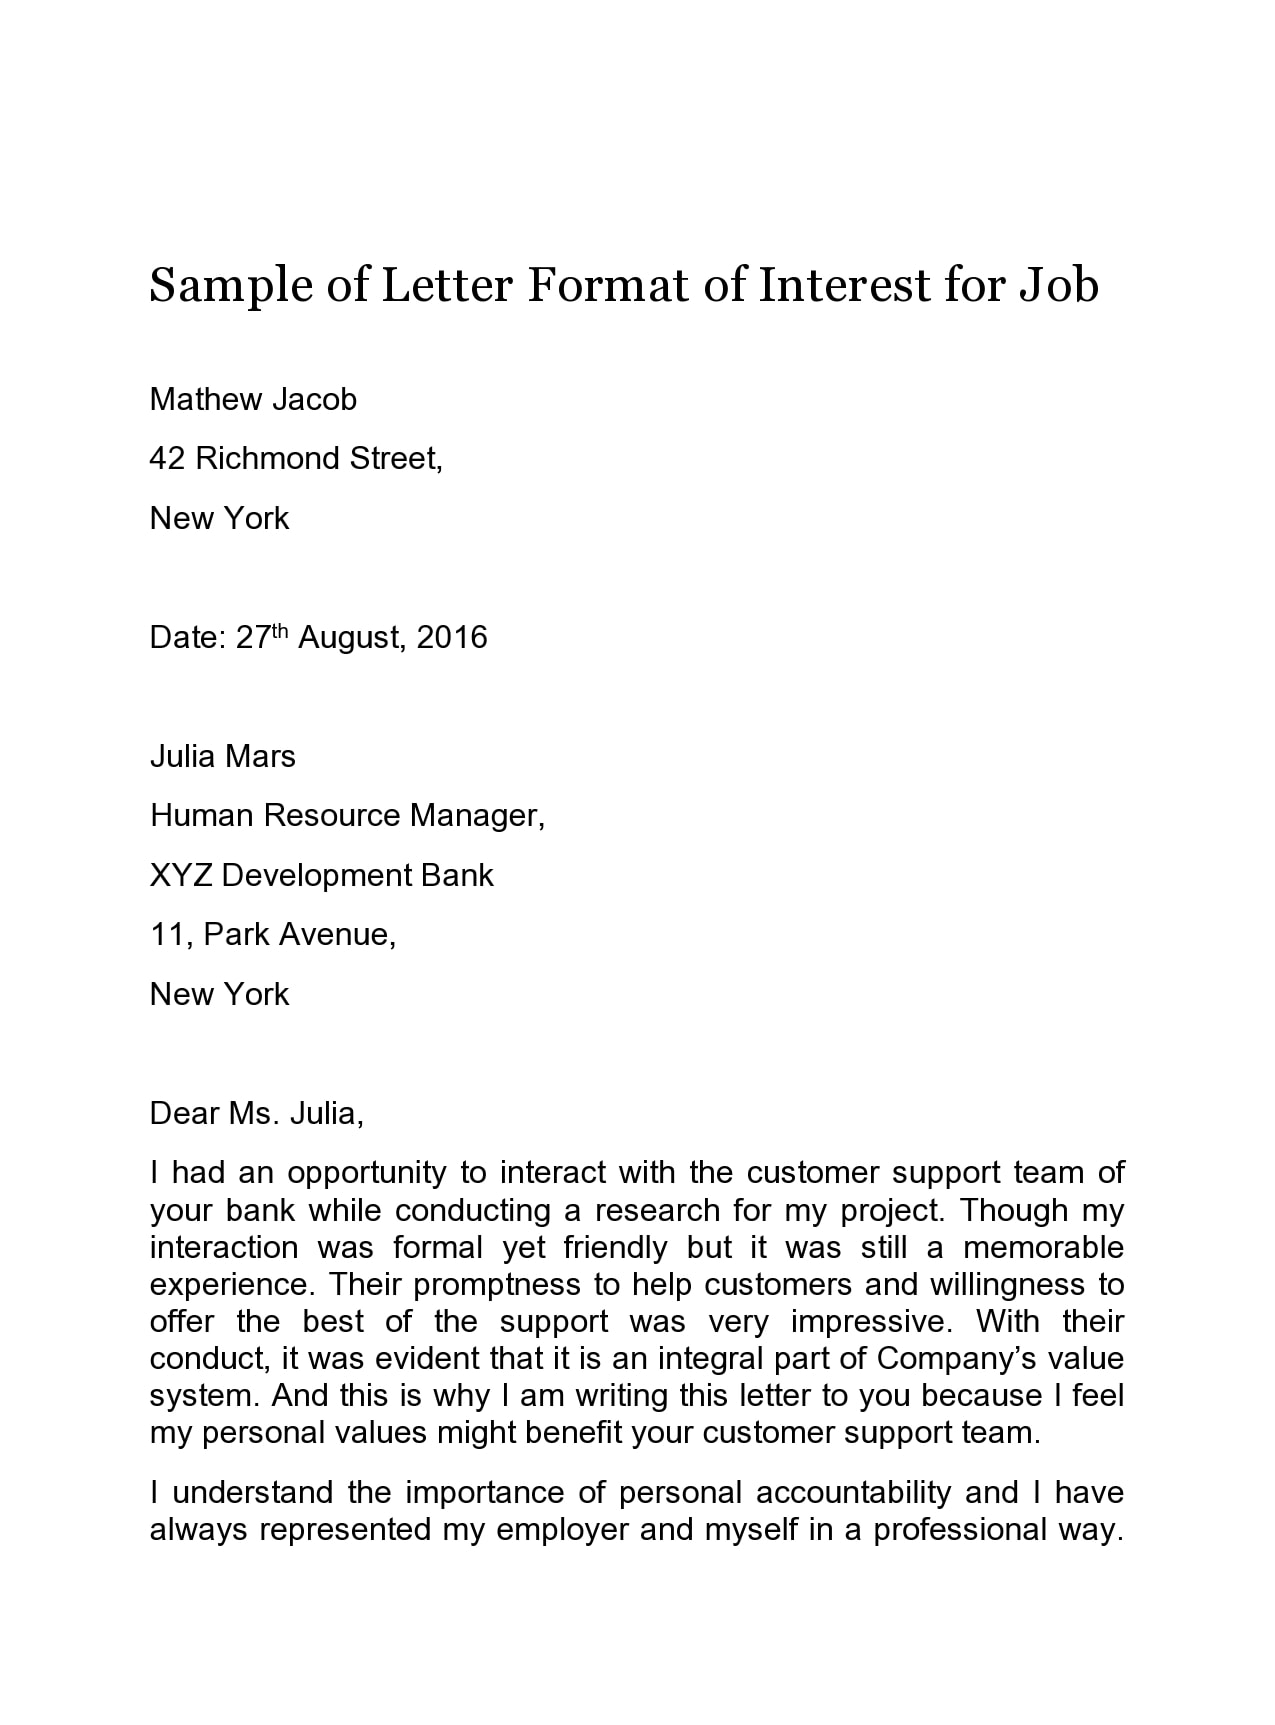 Letter Of Interest Format from templatearchive.com